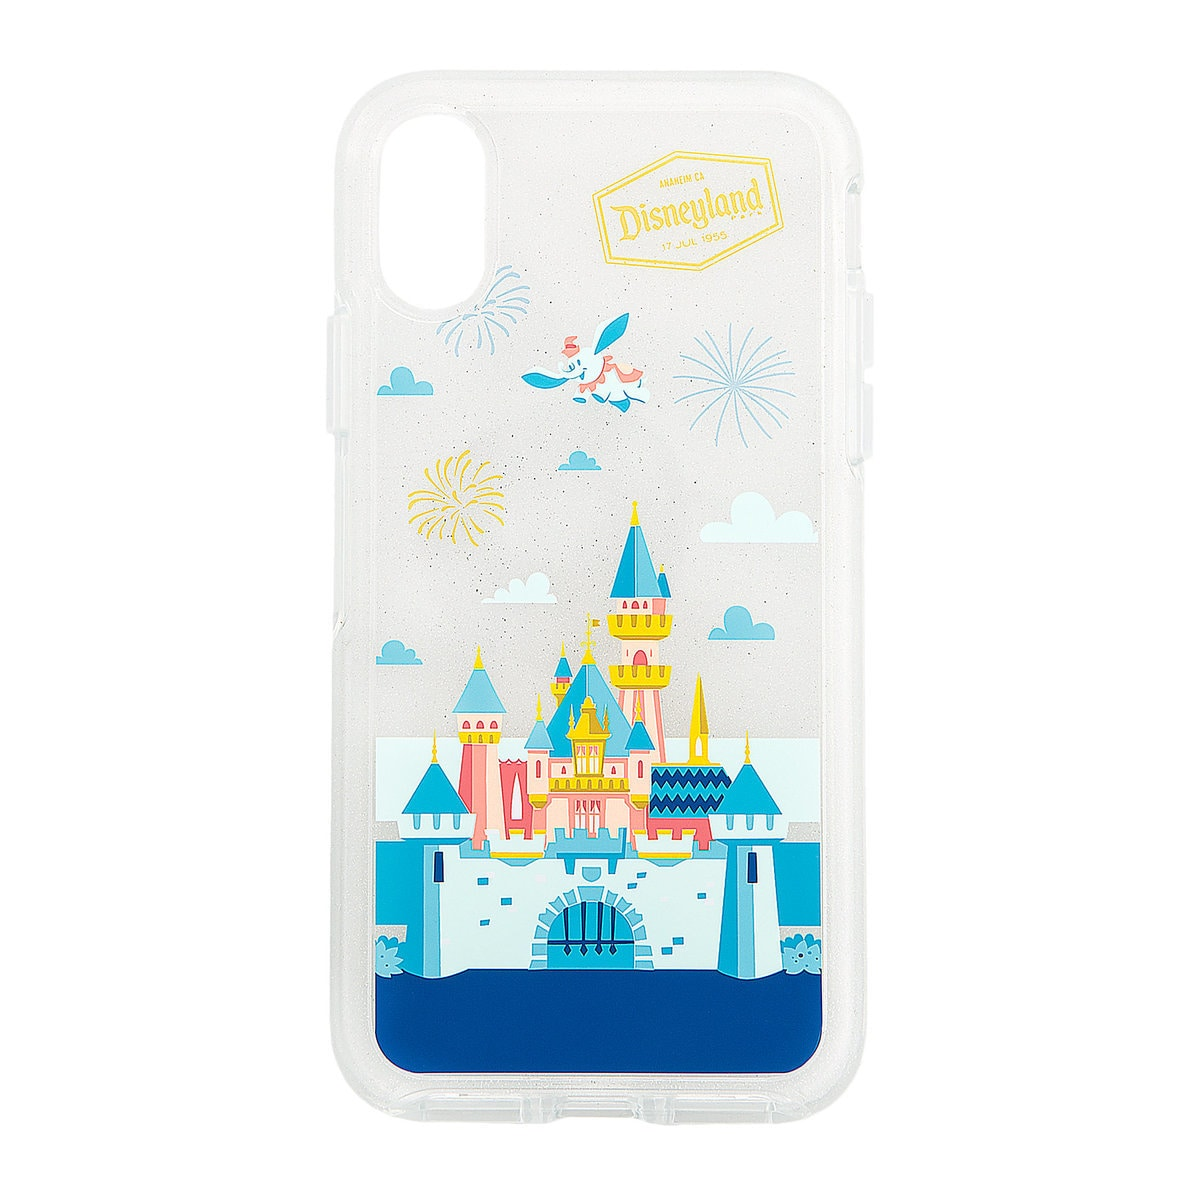 lowest price 47fb5 cdc57 Sleeping Beauty Castle iPhone X Case by Otterbox - Disneyland